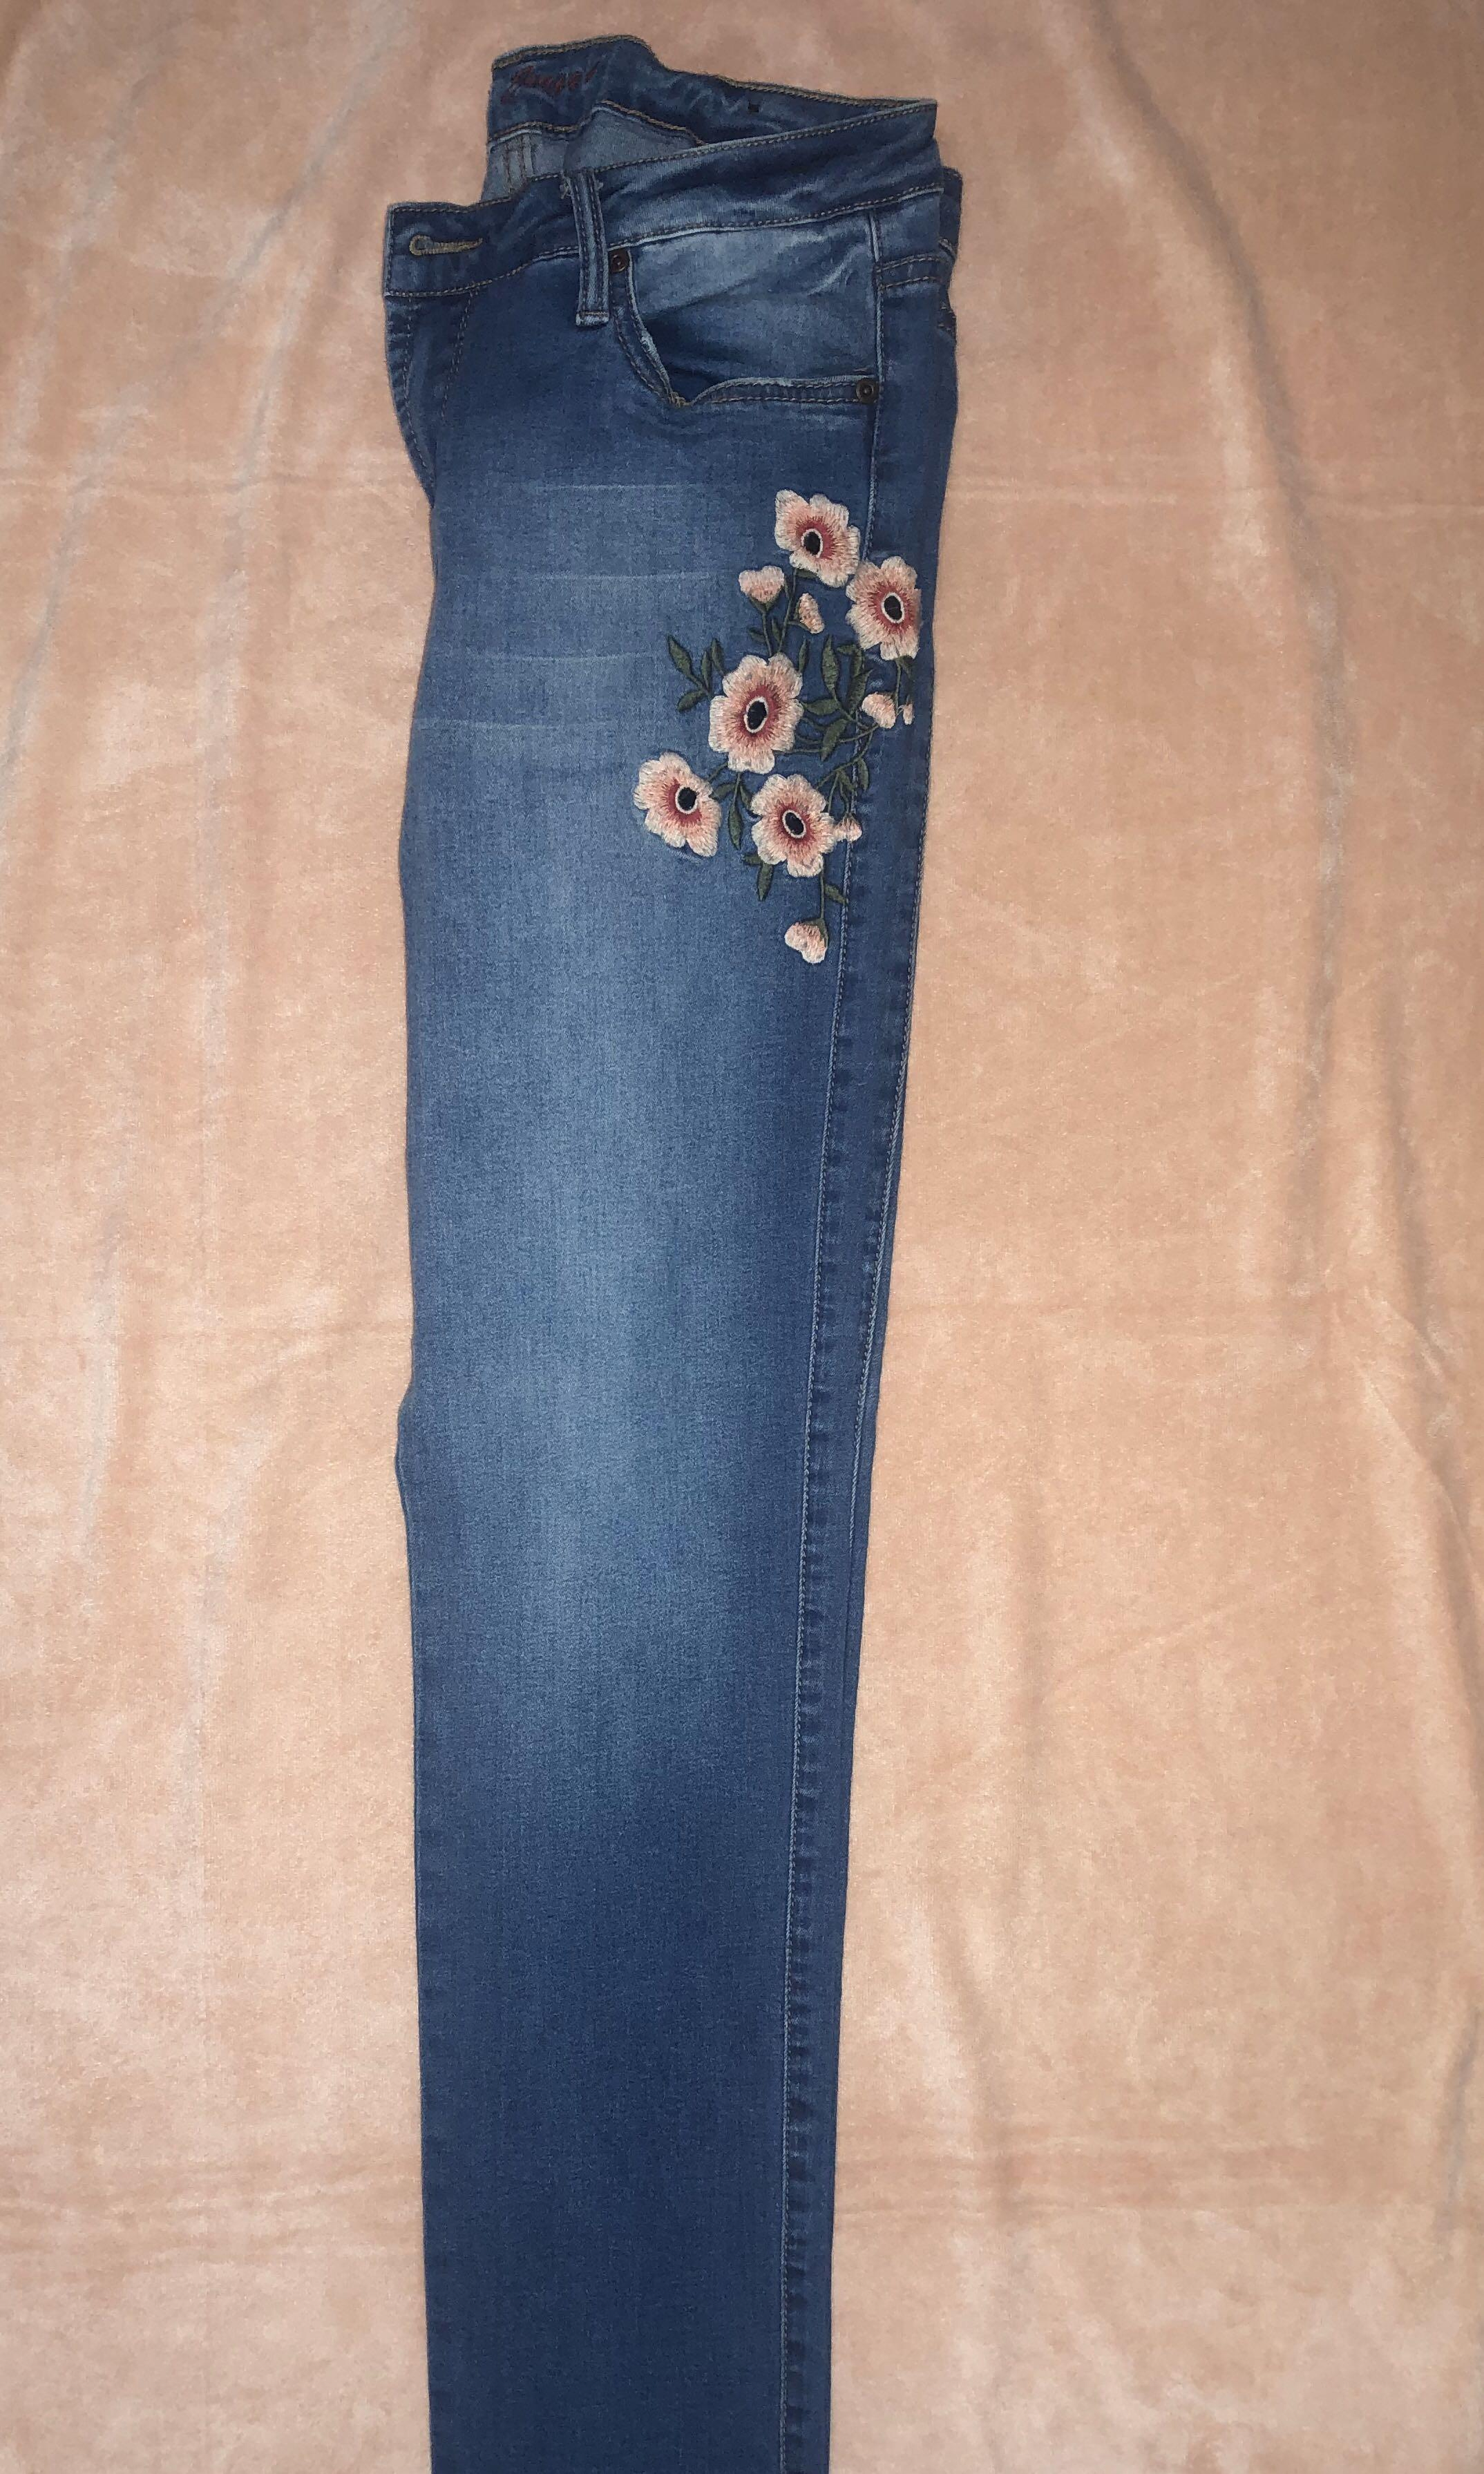 garage jeans with floral